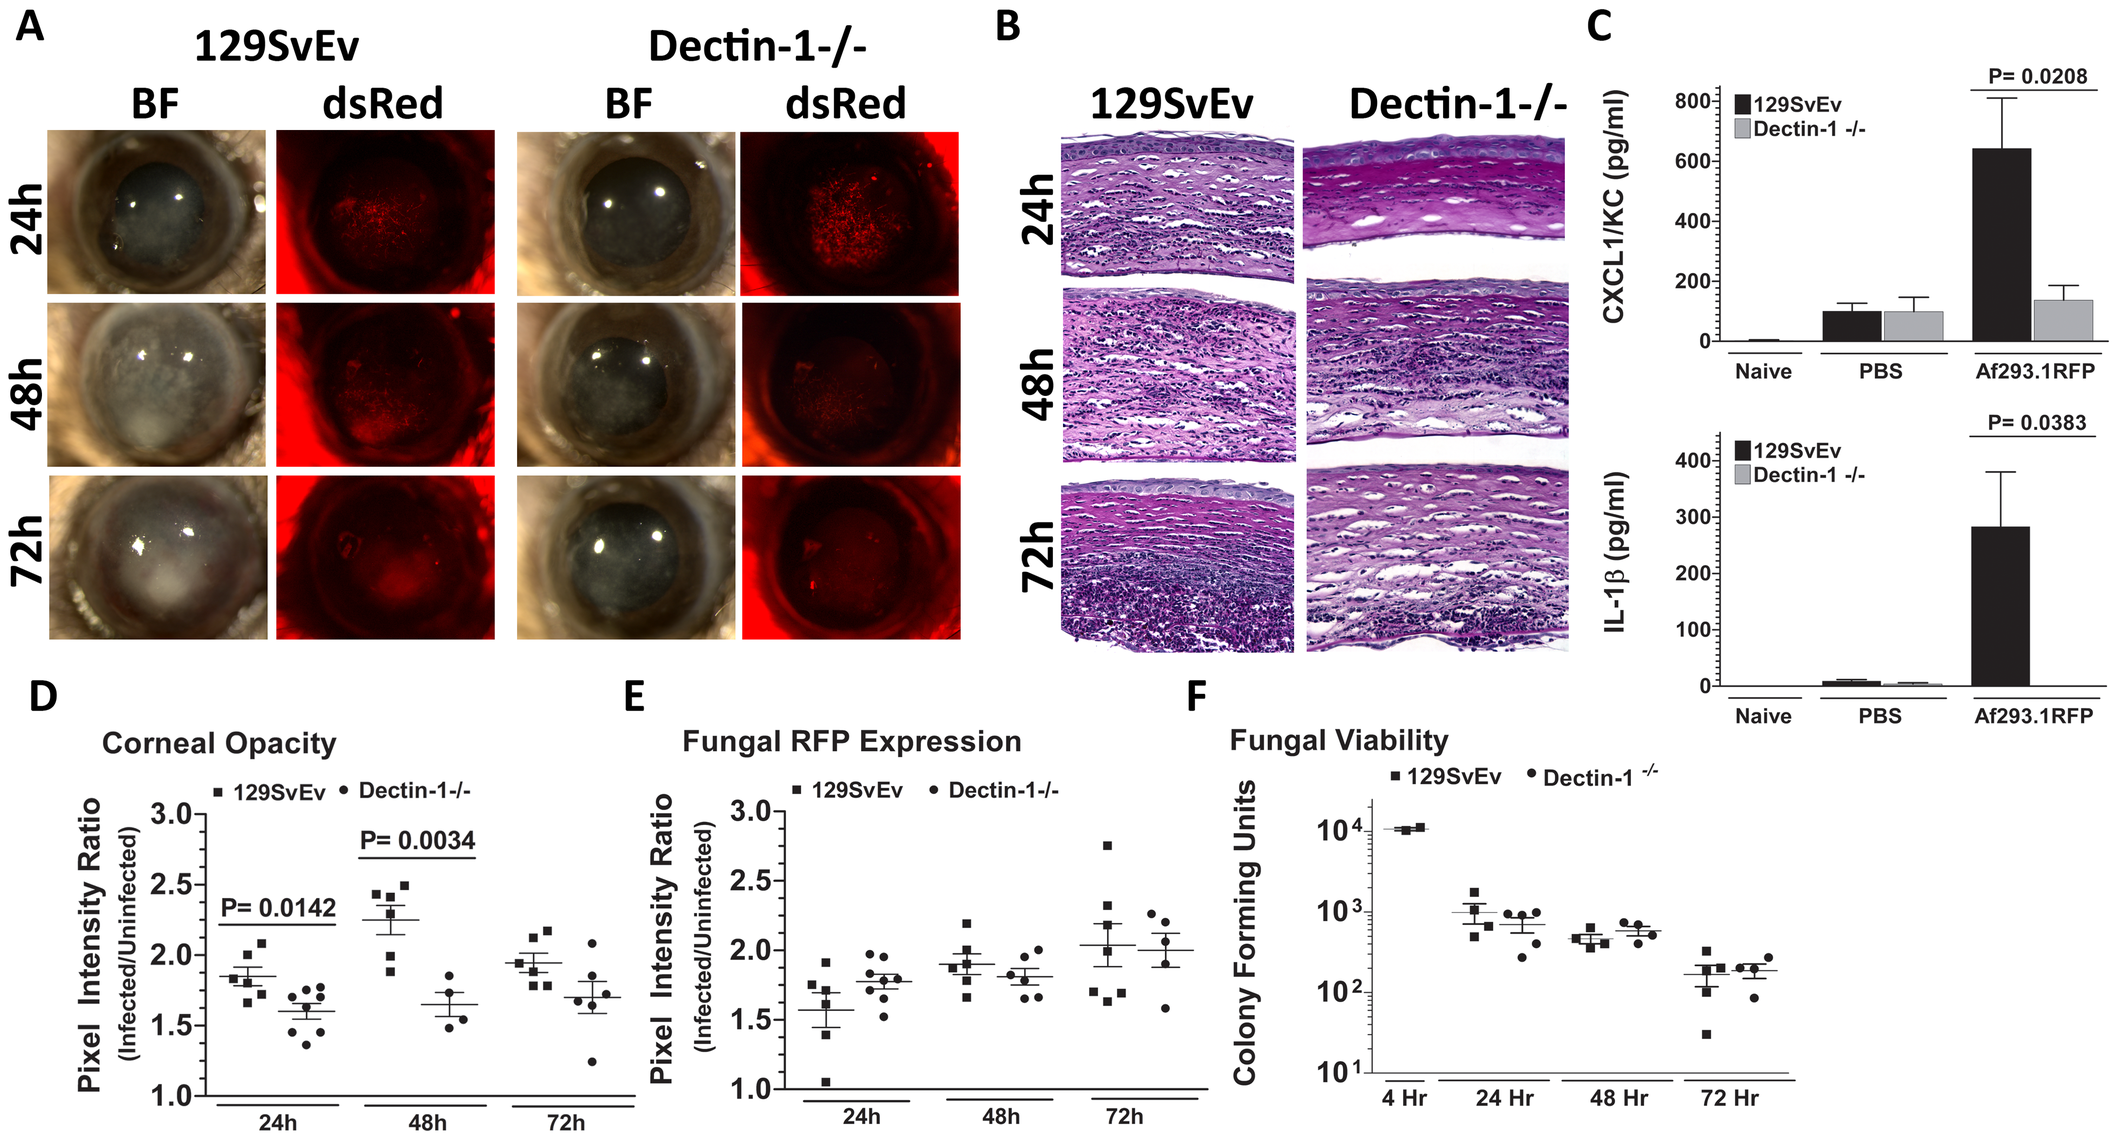 Role of Dectin-1 in keratitis caused by <i>A. fumigatus</i> Af293.1RFP.